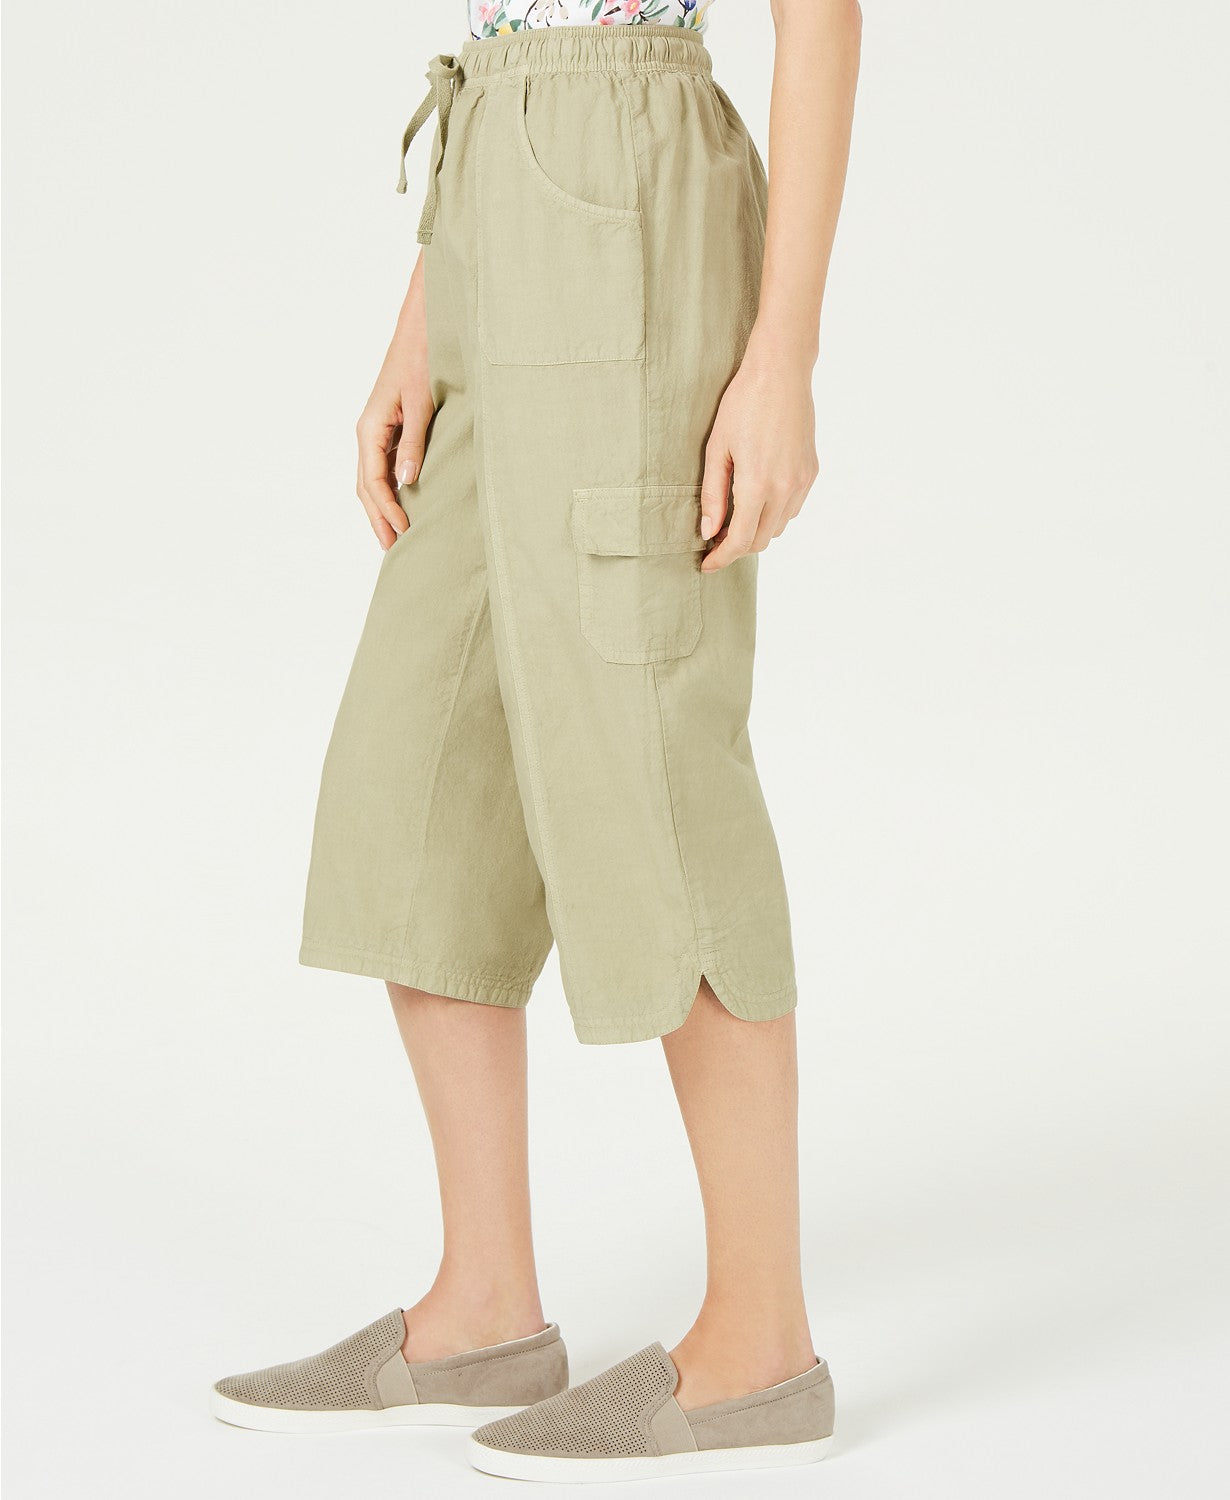 KAREN SCOTT Womens Green Pants